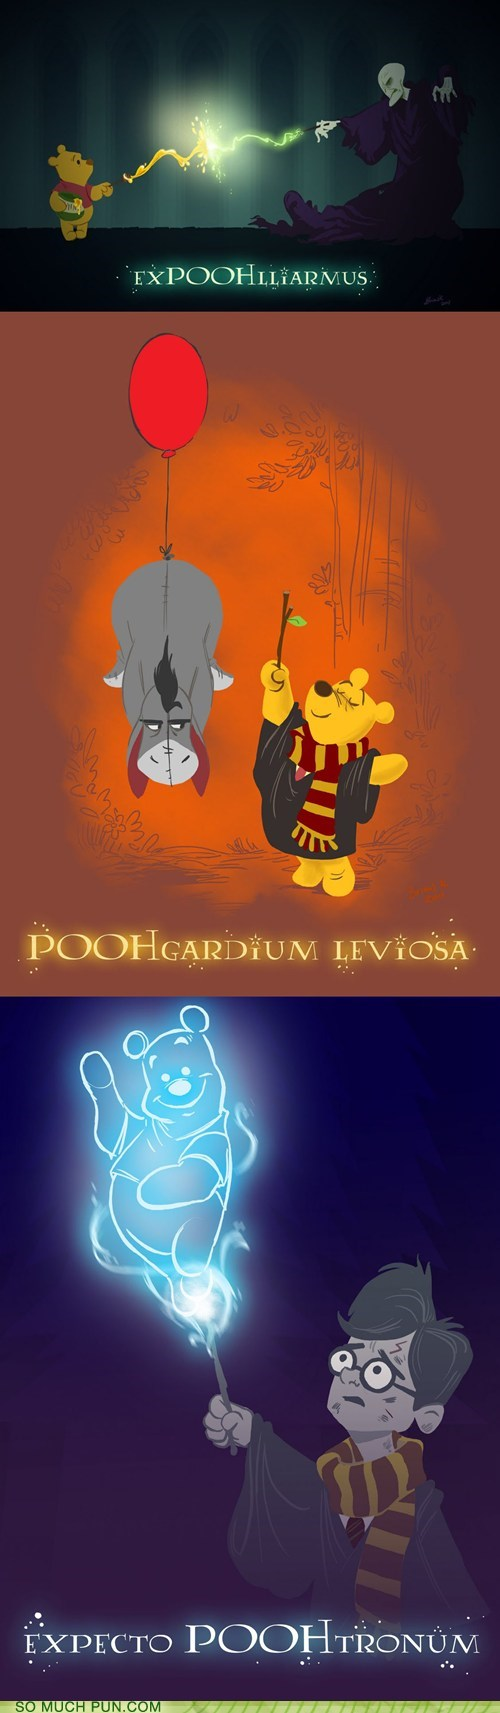 Hall of Fame Harry Potter literalism magic pooh replacement similar sounding spells syllable winnie the pooh - 6209740288